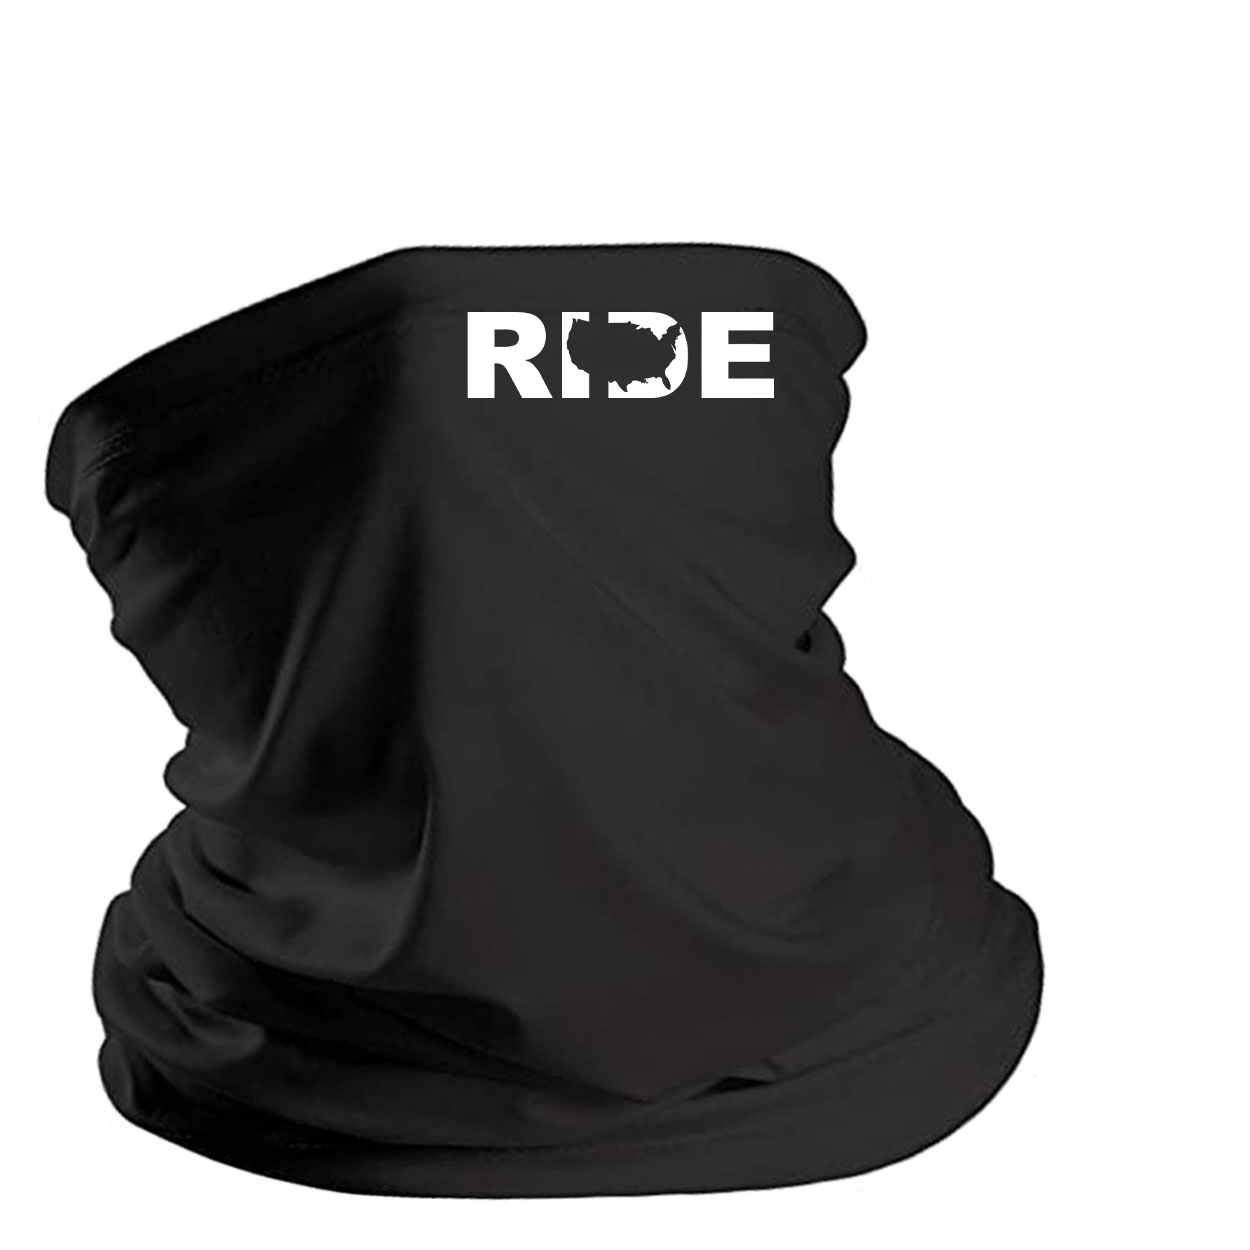 Ride United States Night Out Lightweight Neck Gaiter Face Mask Black (White Logo)